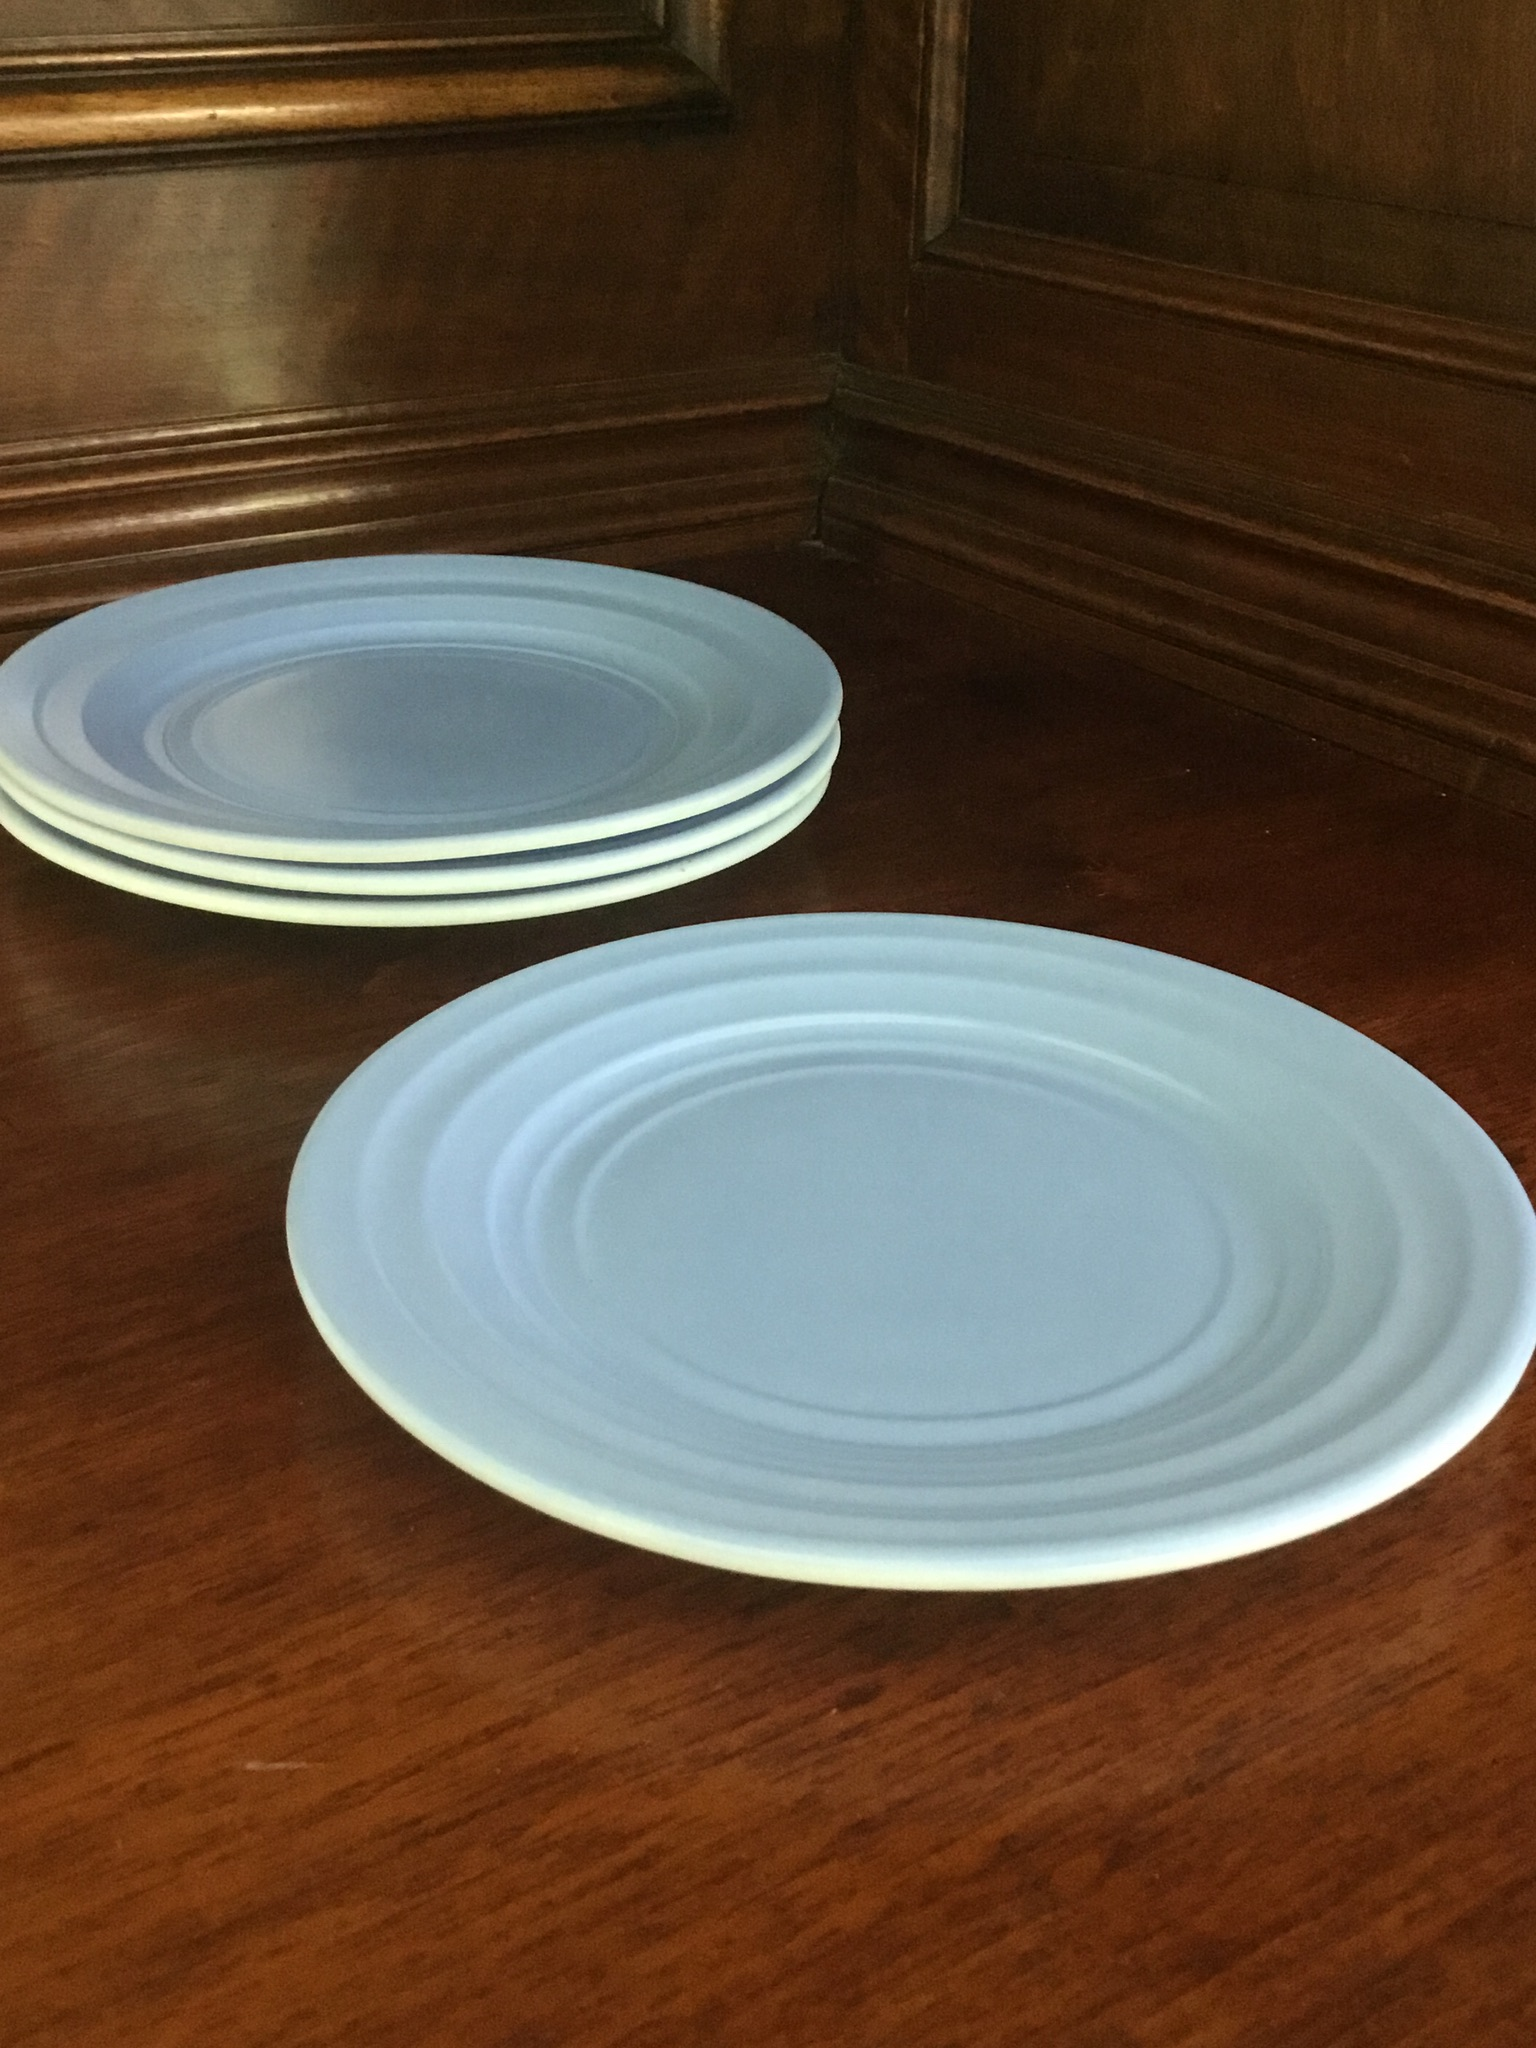 & Moderntone Pastel Blue Bread and Butter Plates Set of 4